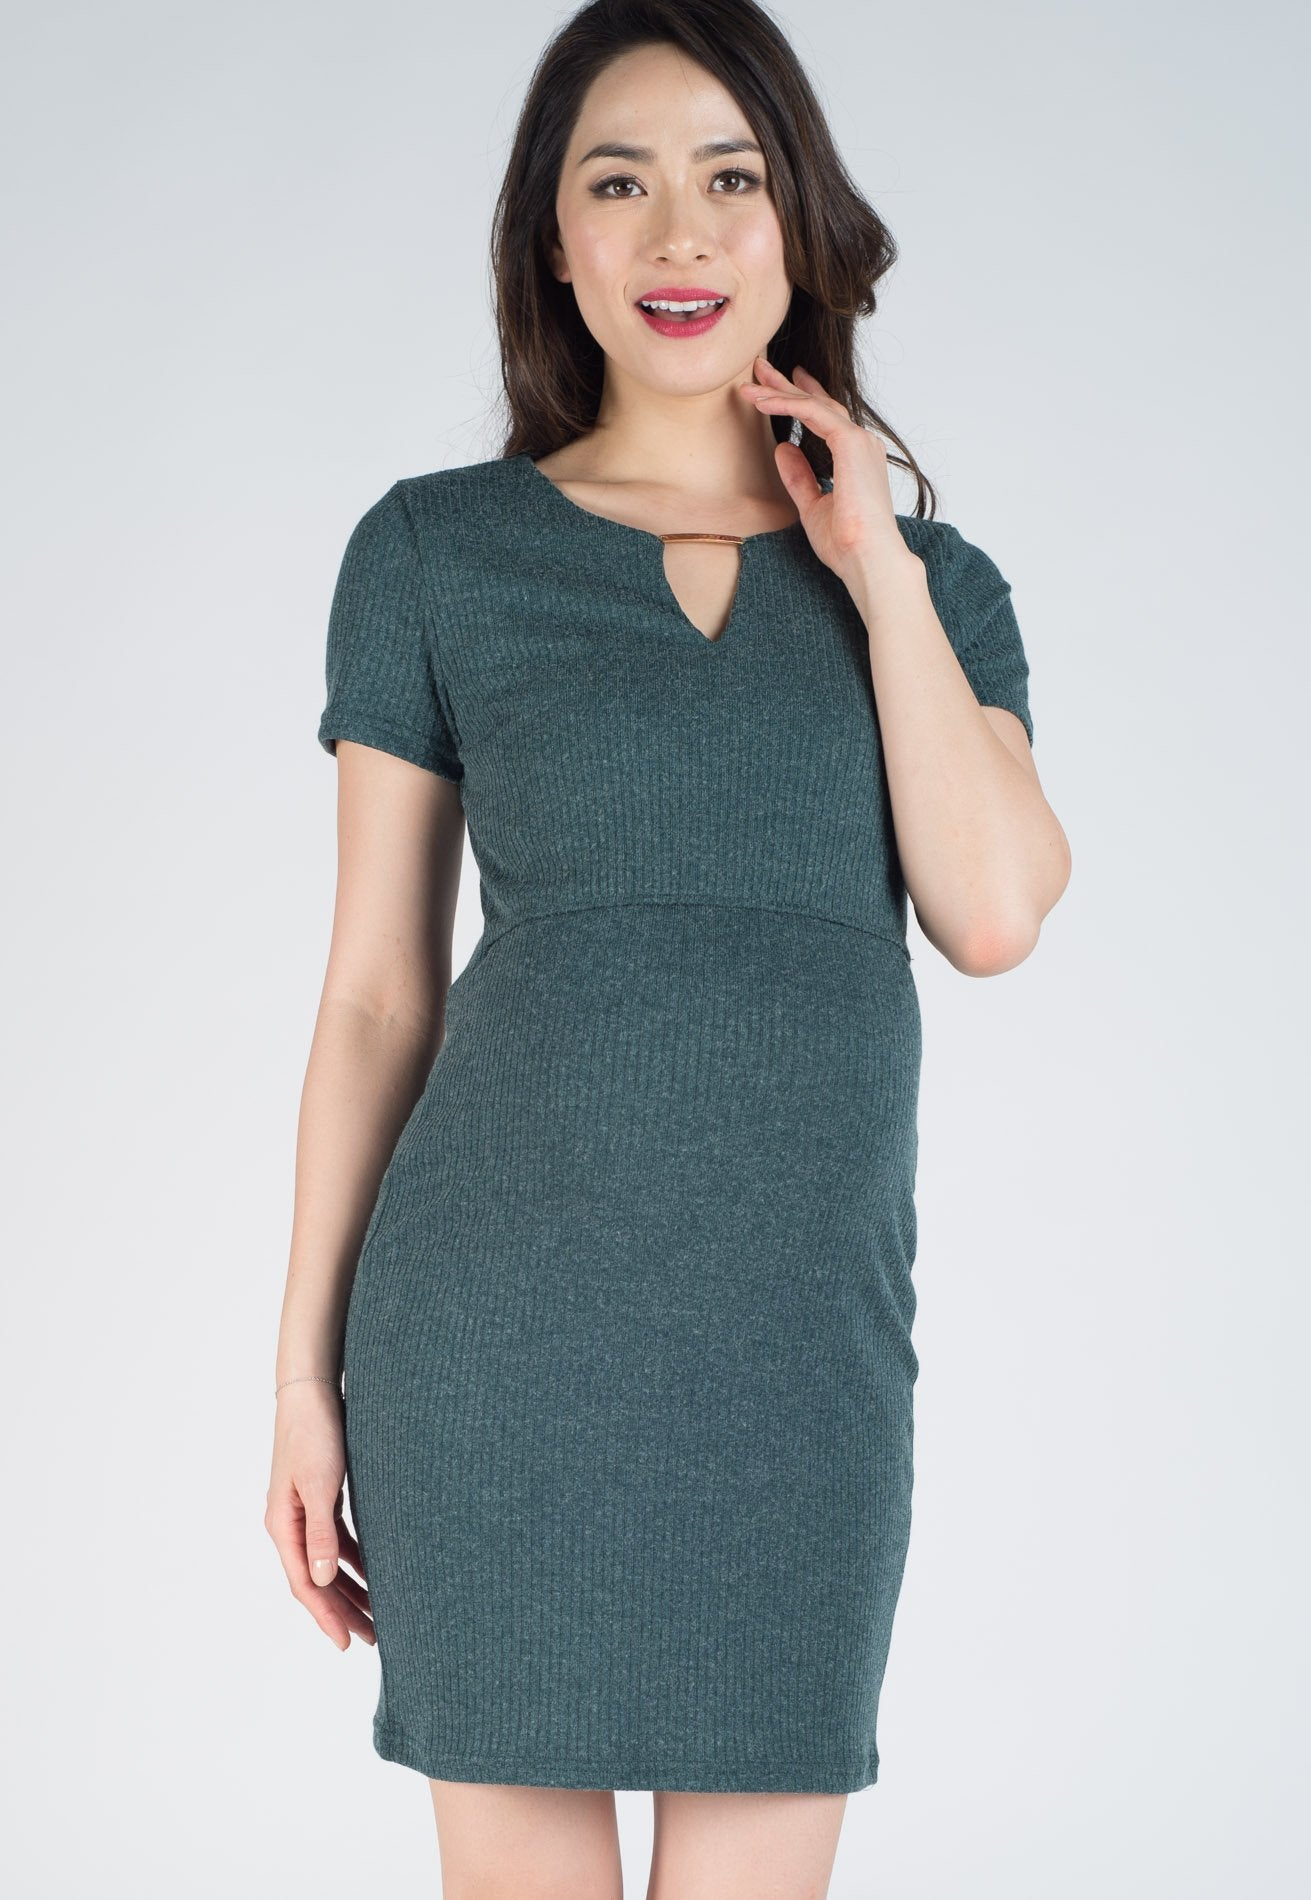 c3d5e33bd21 ... SALE Forest Nelya Ribbed Knitted Nursing Dress by Jump Eat Cry -  Maternity and nursing wear ...